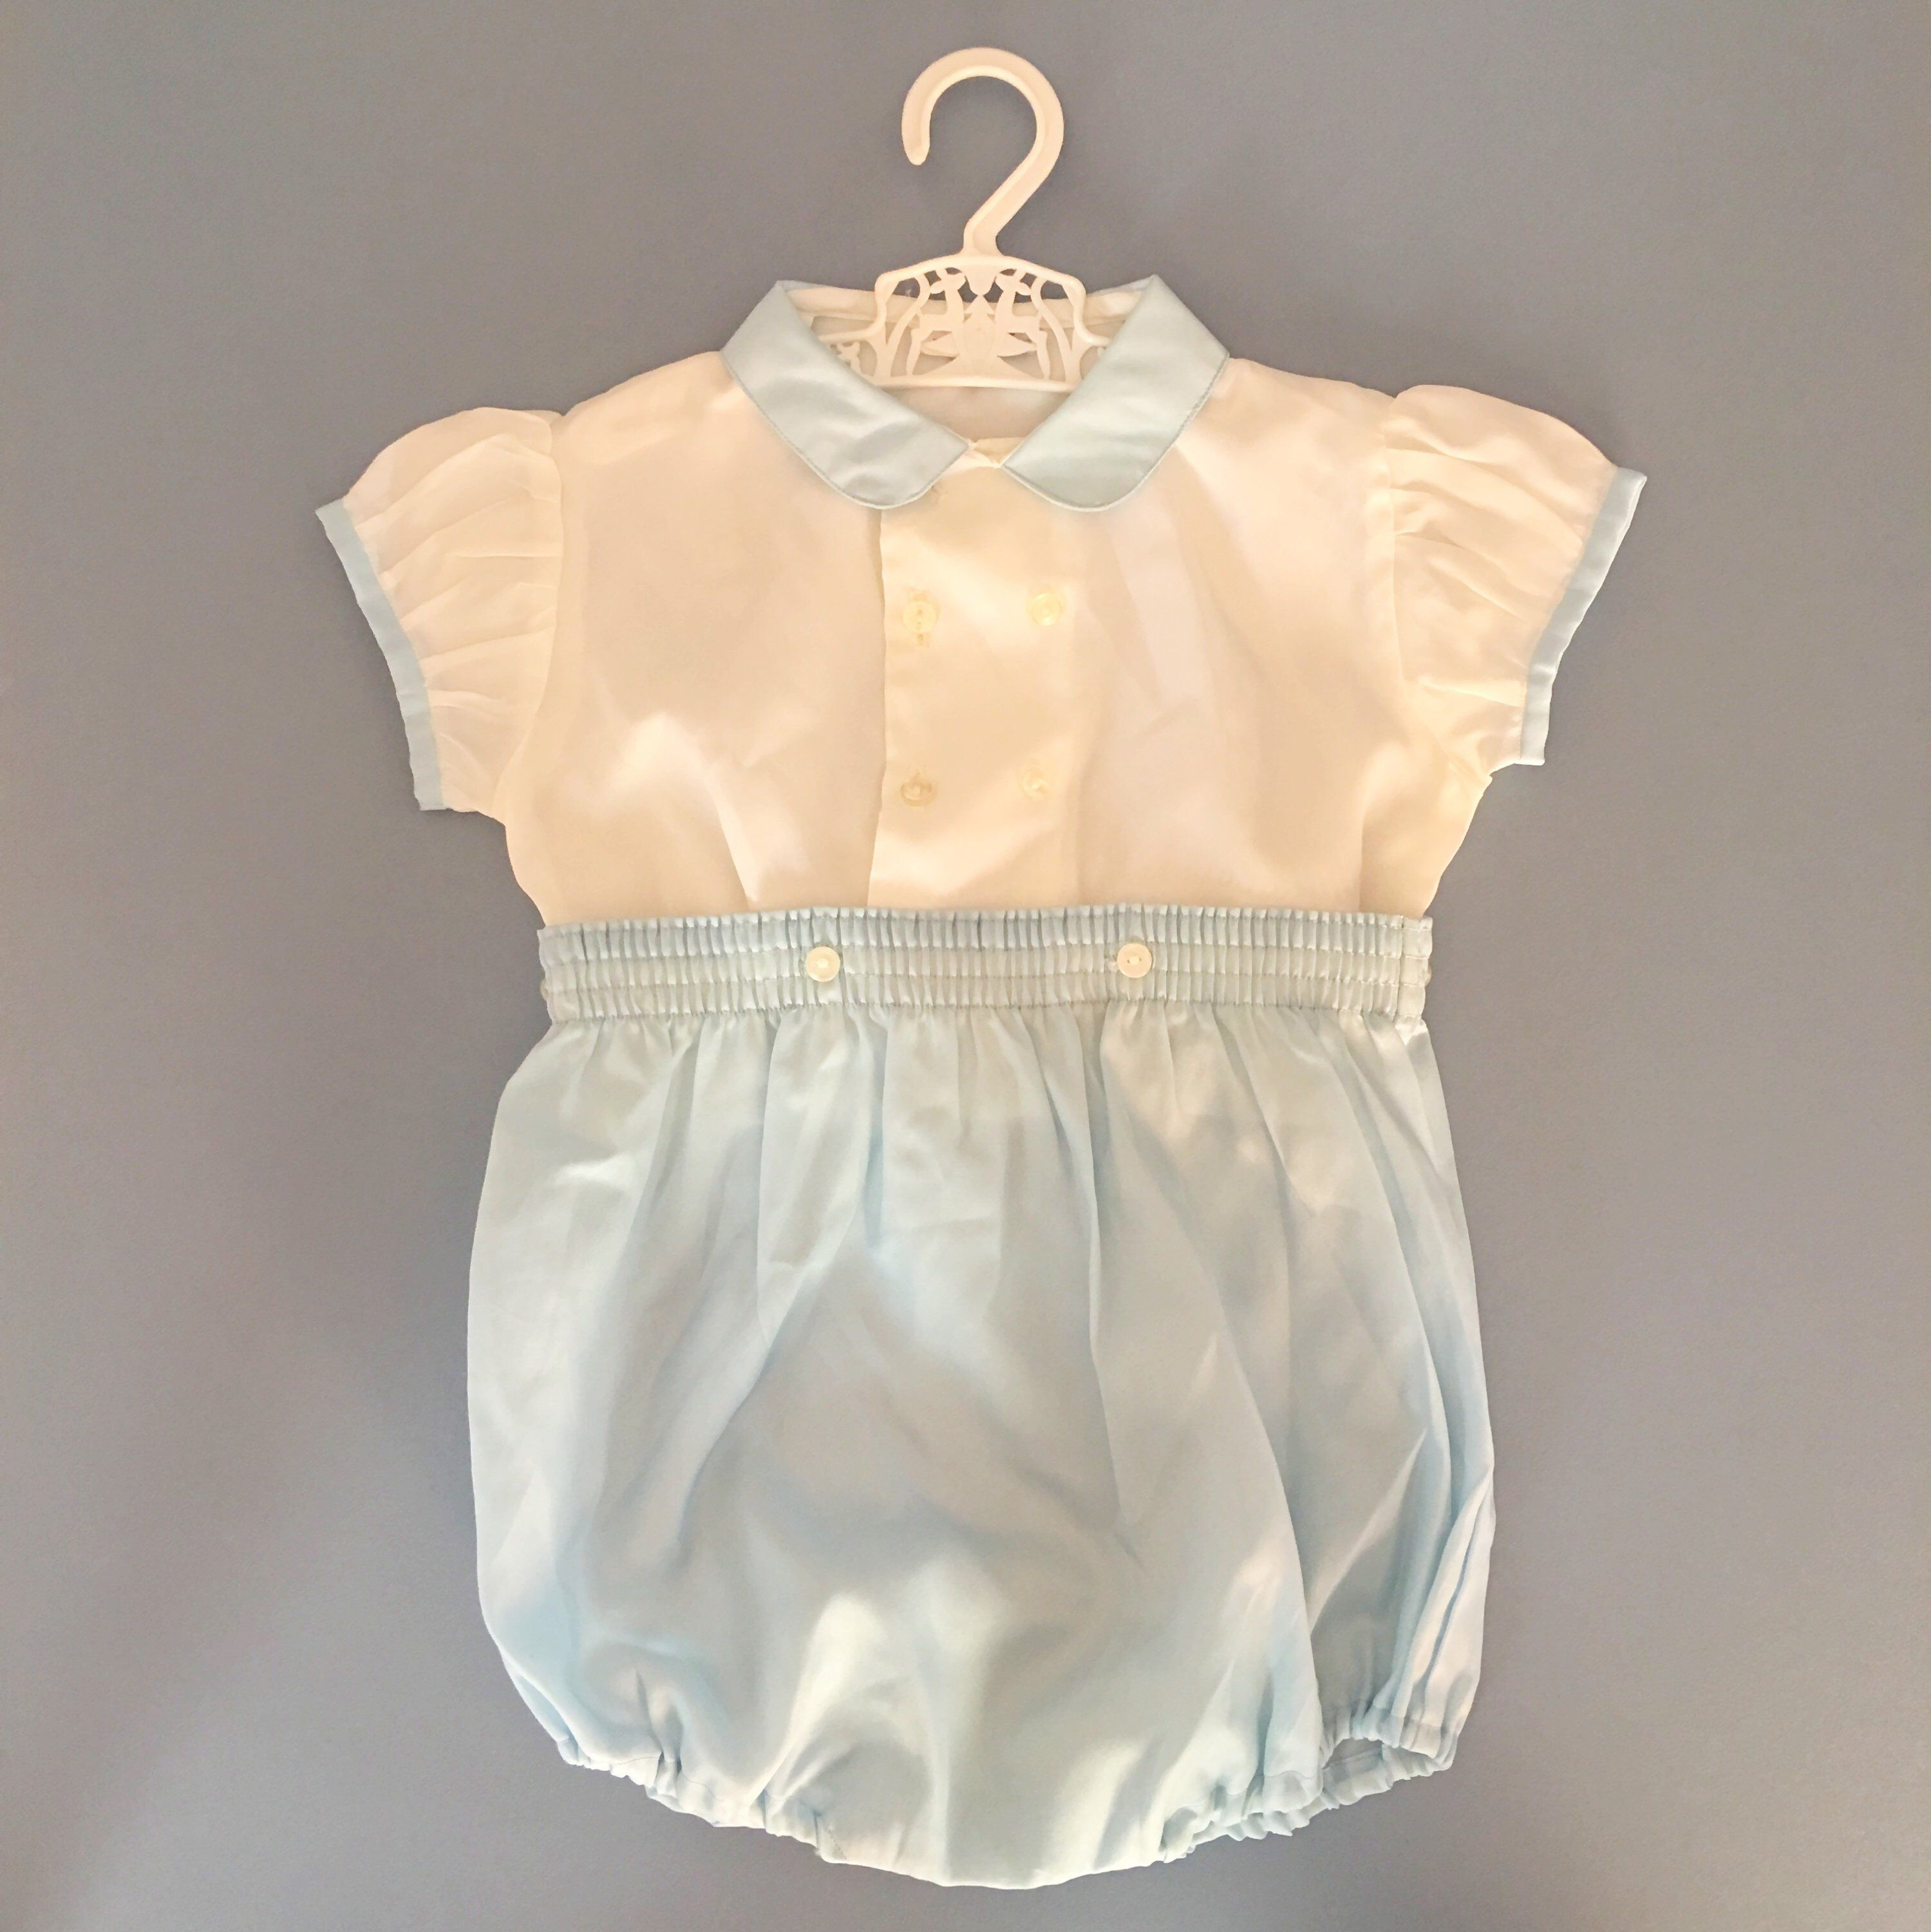 33bd24a6078 Vintage 18-24 Months baby boy blue white romper shorts traditional baby  prince classic baby outfit